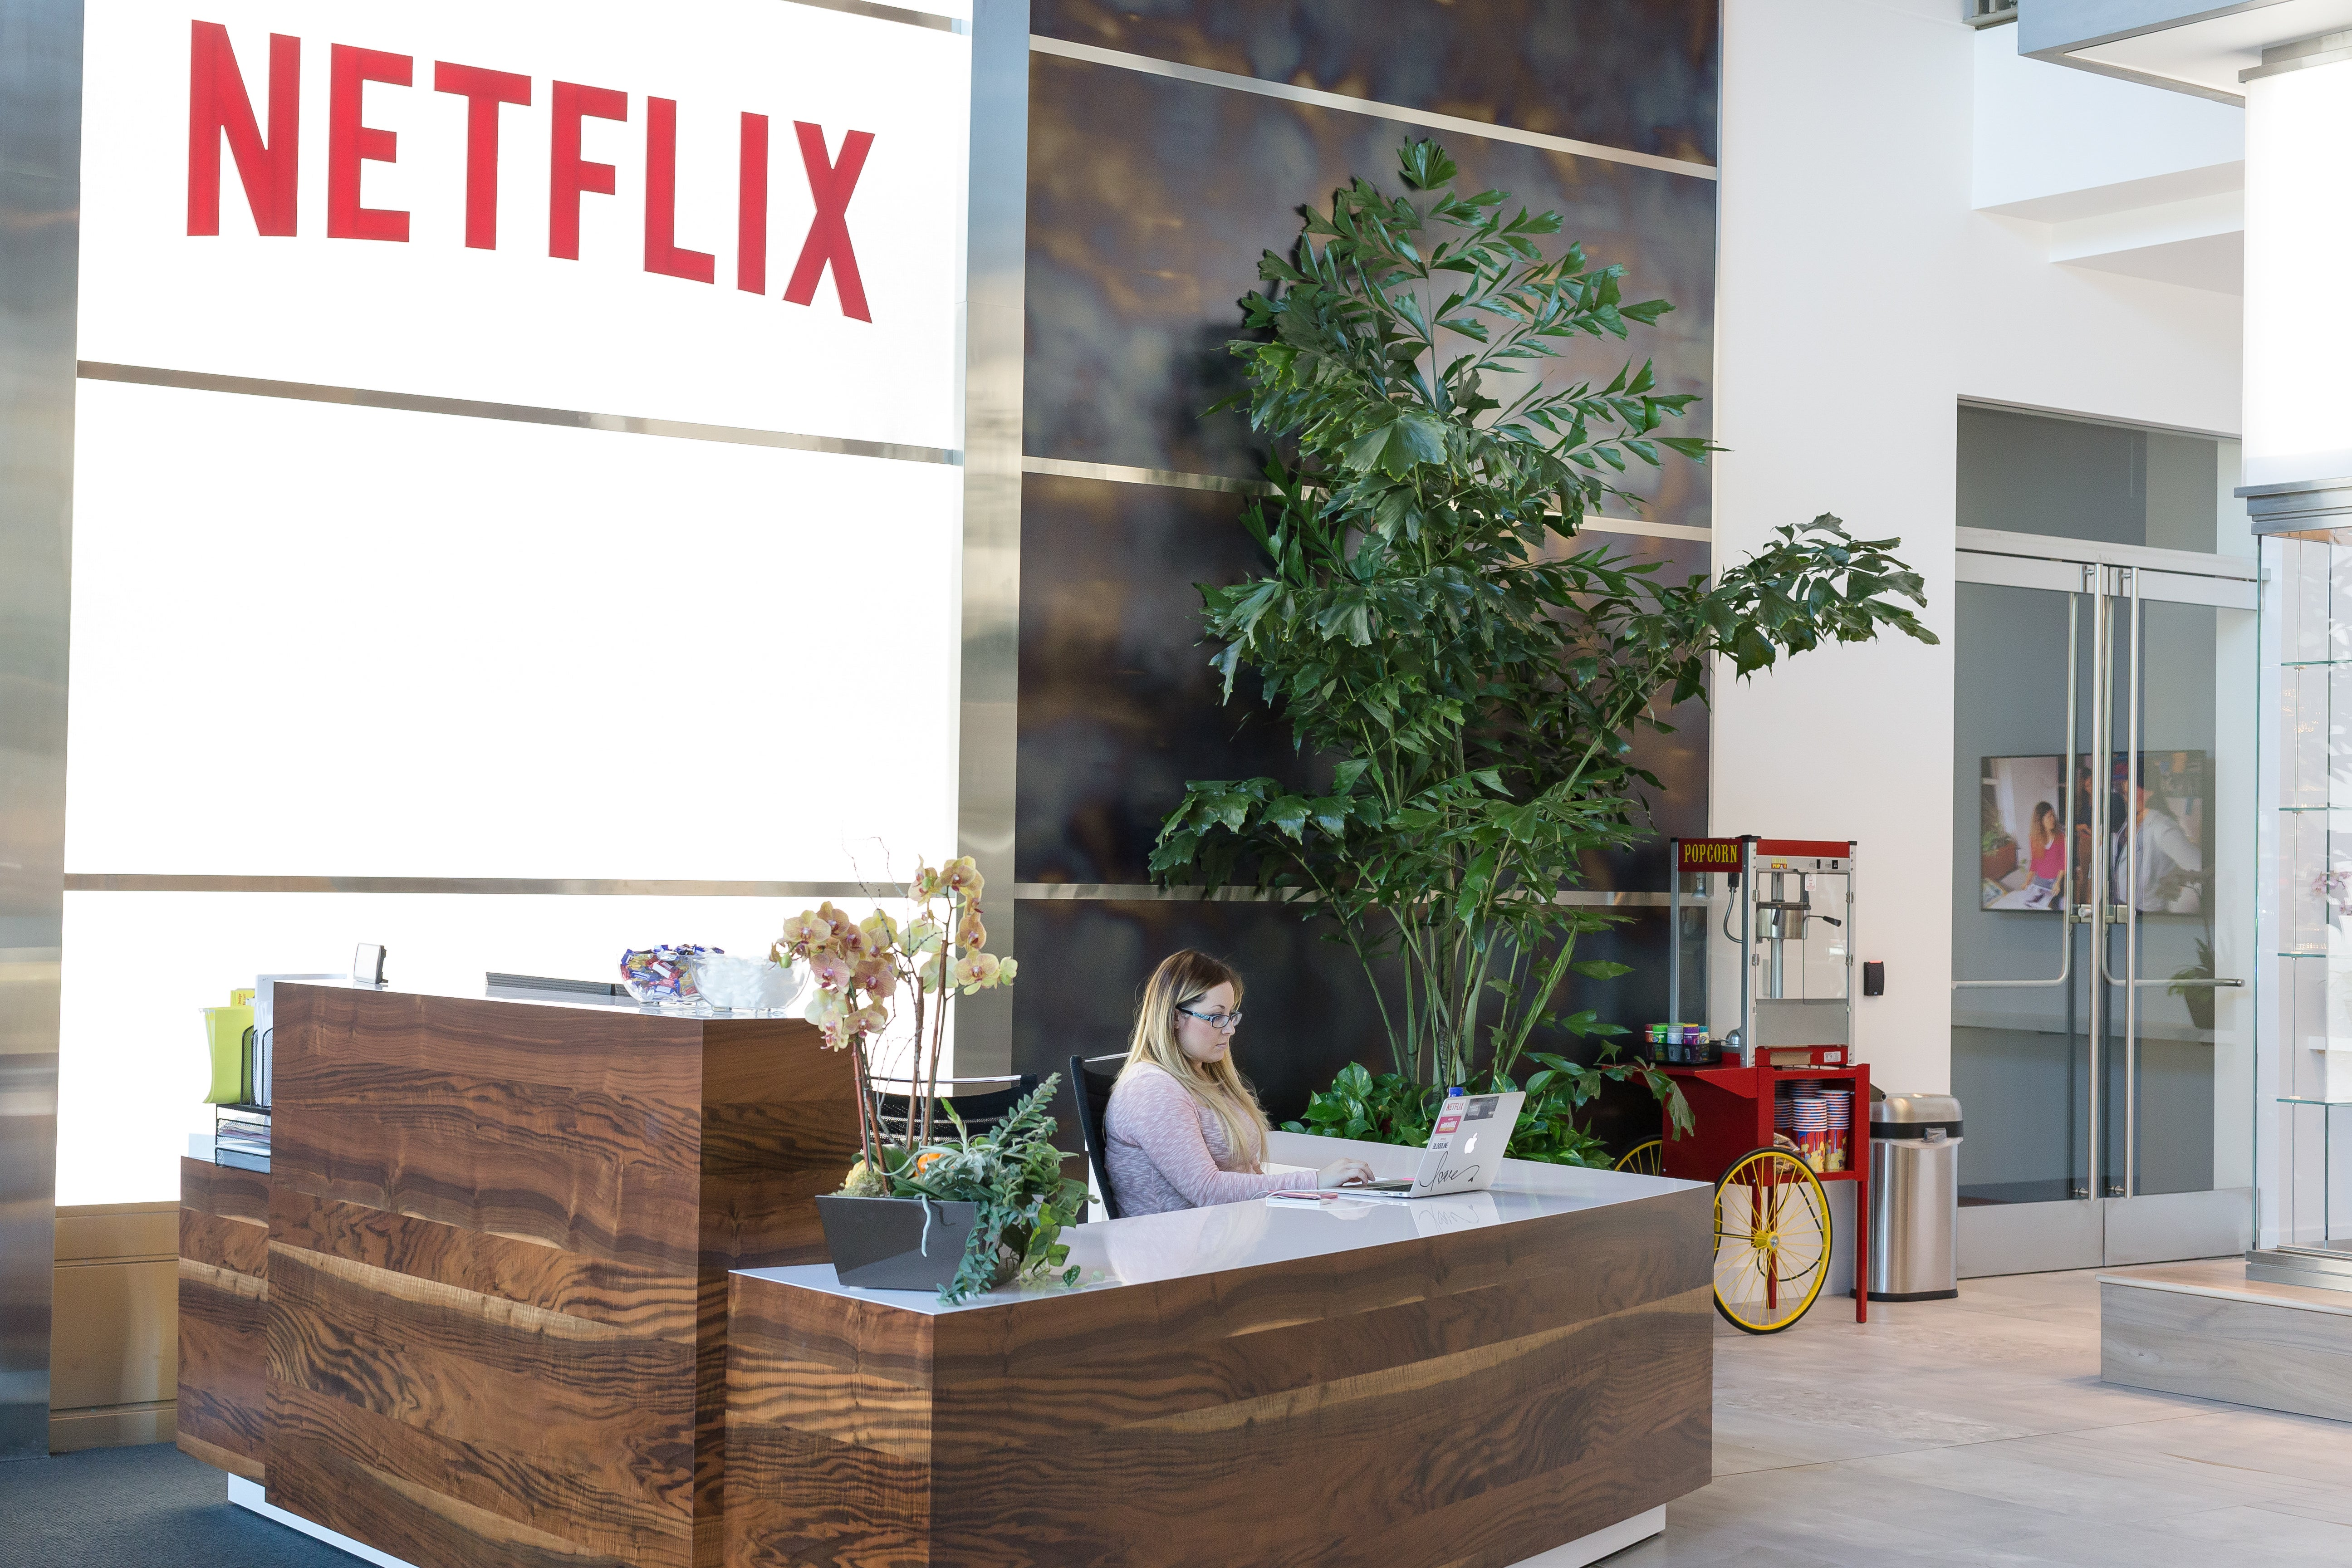 where will netflix be in 5 years